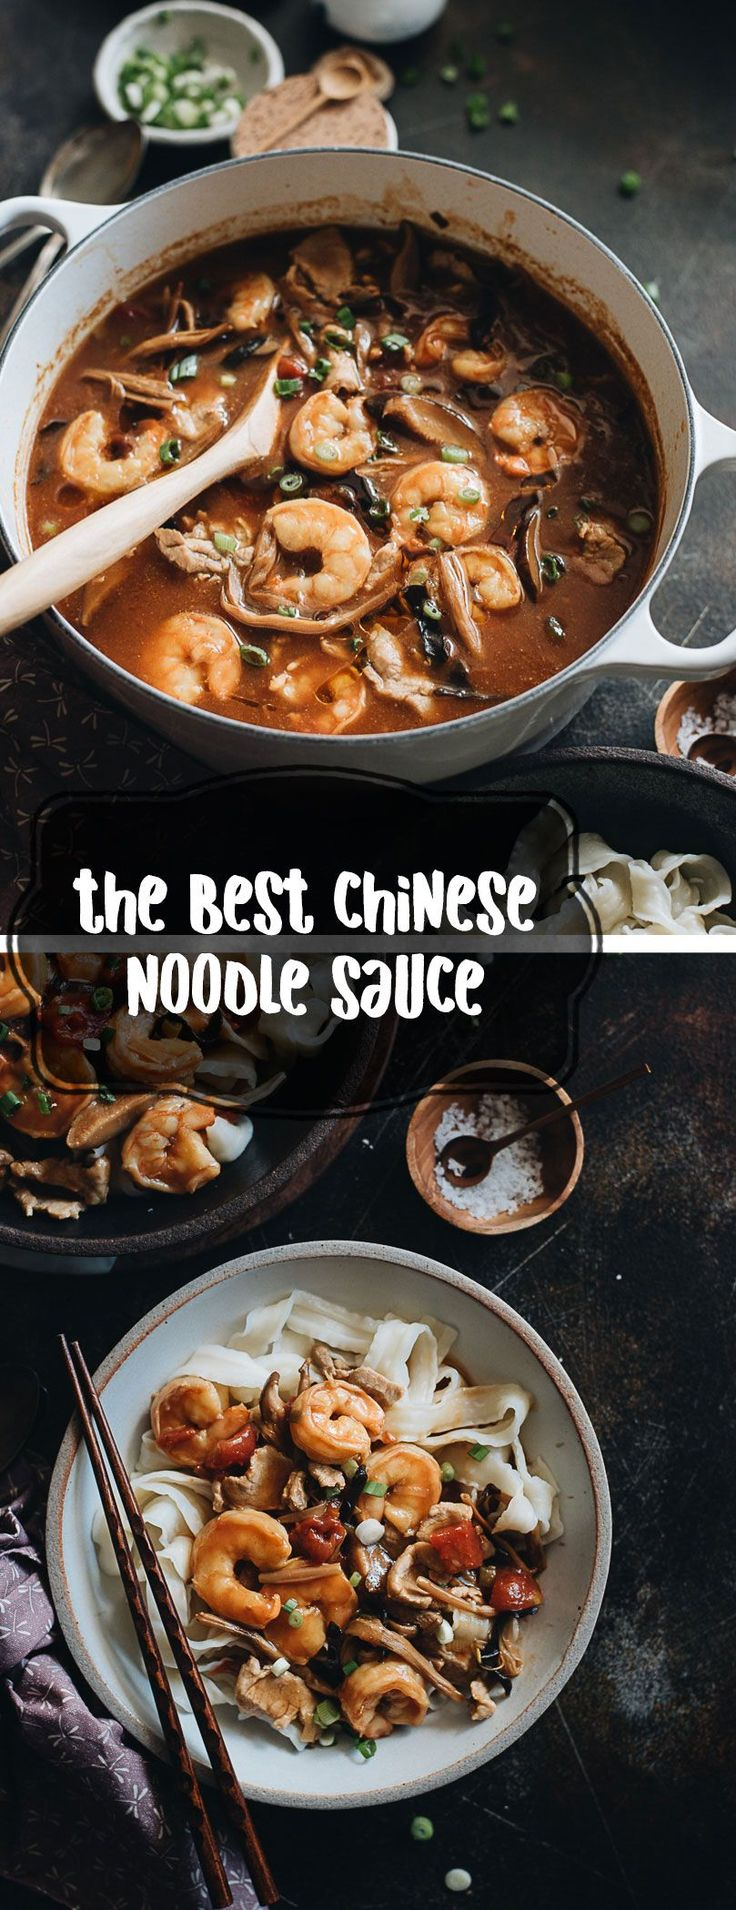 The Best Chinese Noodle Sauce (Da Lu Mian, 打卤面) - These traditional northern-style Chinese noodles are comfort food in the truest sense and a must-cook for Chinese New Year. #chinesefoodrecipes